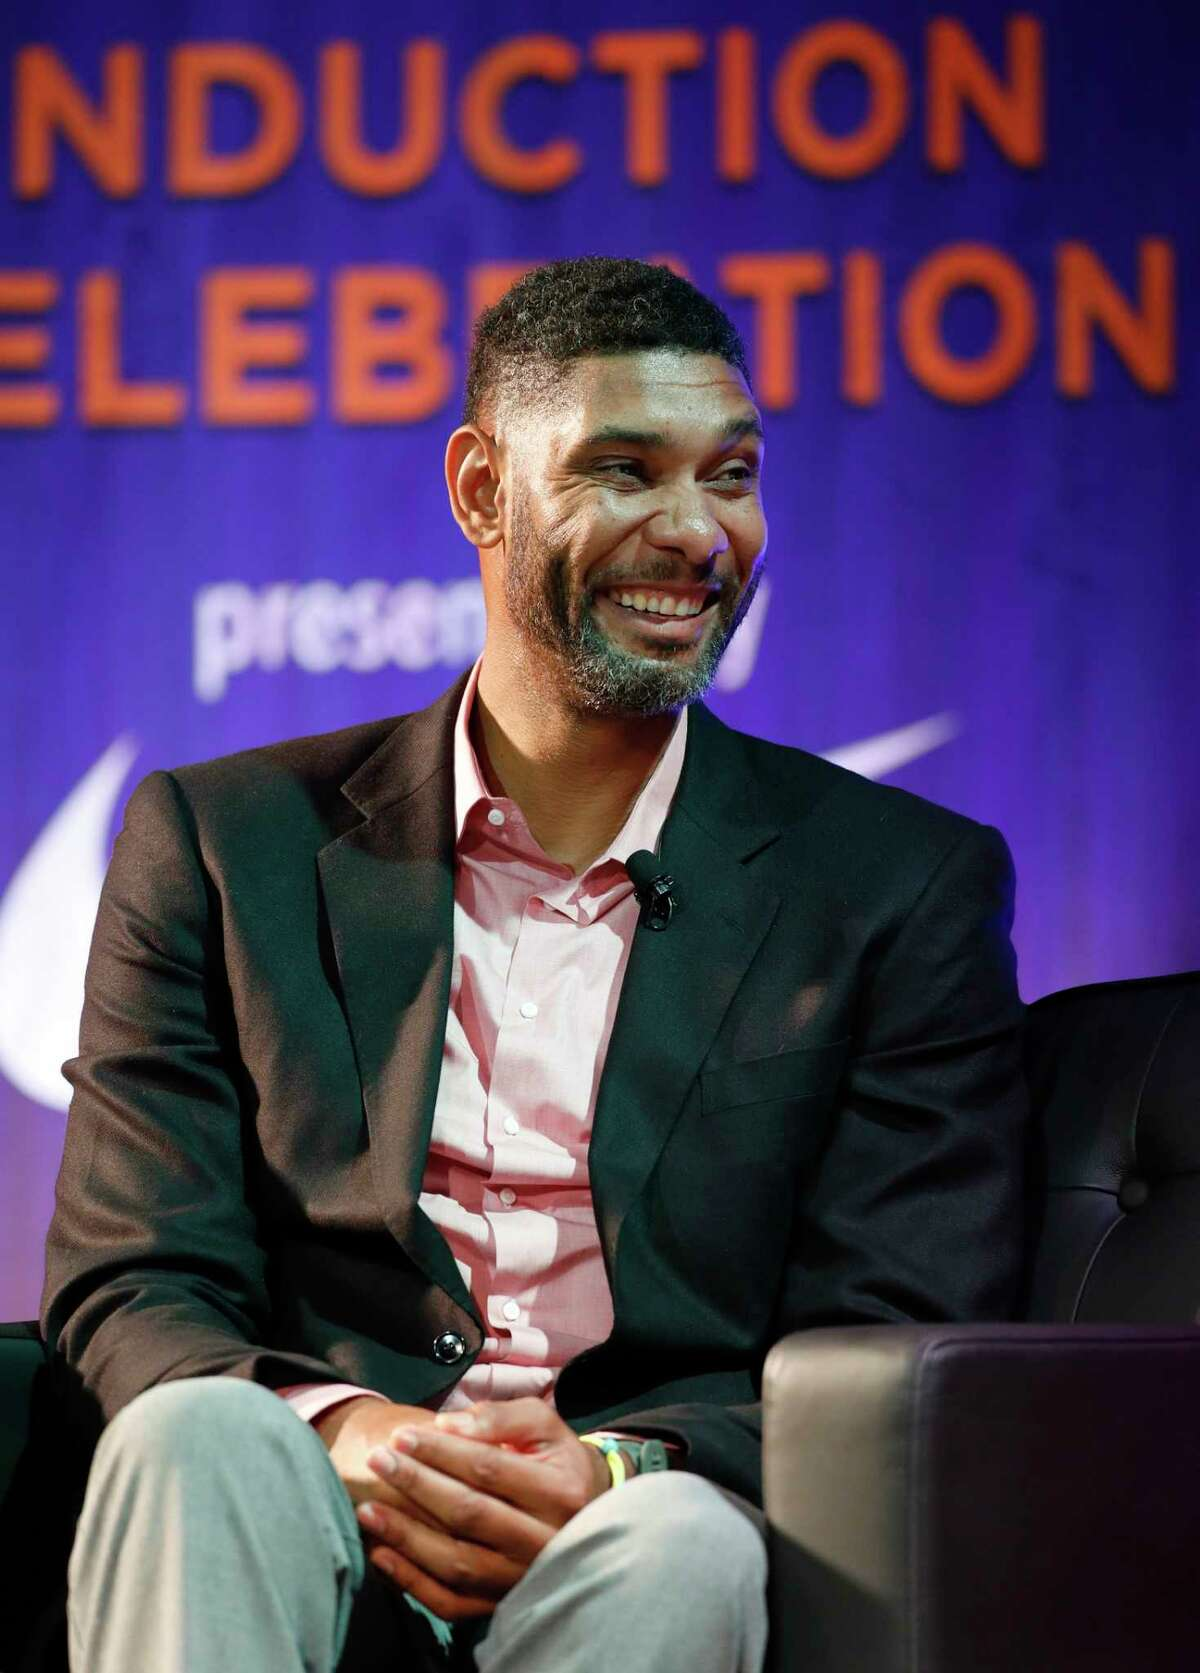 Former Wake Forest great, Tim Duncan, talks about his career during a National Collegiate Basketball Hall of Fame induction event, Sunday, Nov. 19, 2017, in Kansas City, Mo. (AP Photo/Colin E. Braley) ORG XMIT: MOCB10